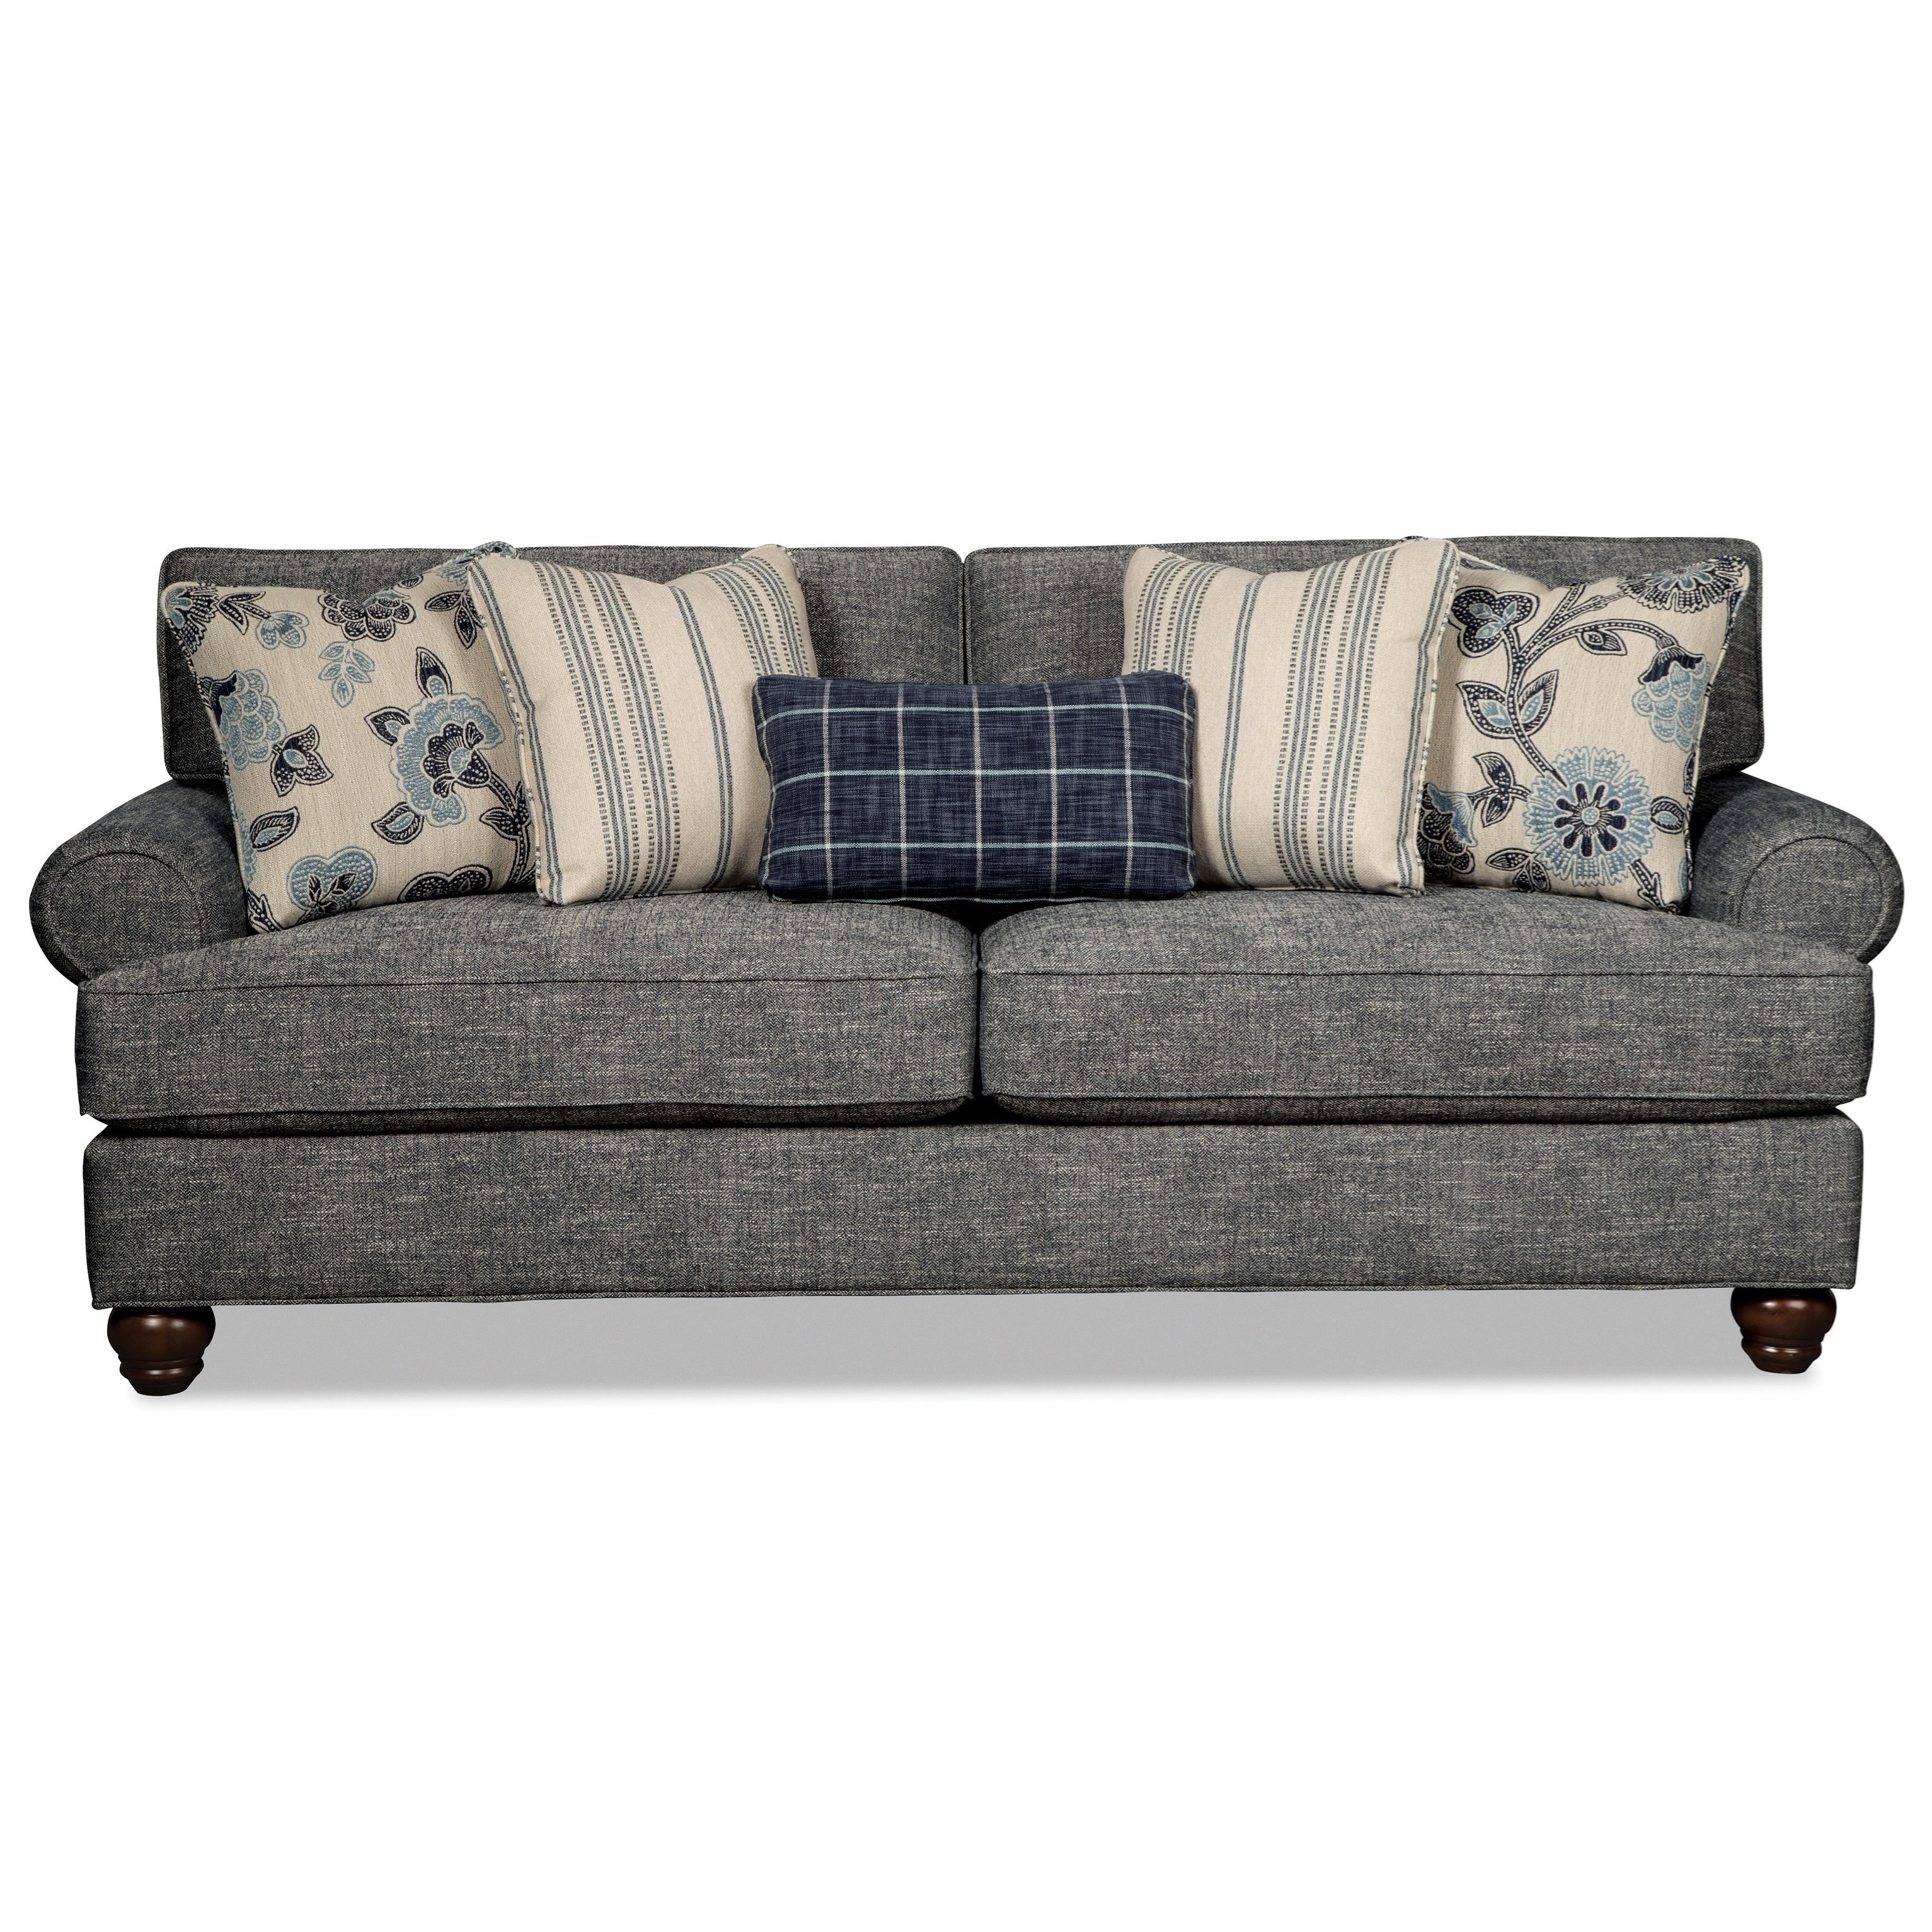 773550 Queen Sleeper Sofa by Craftmaster at Baer's Furniture